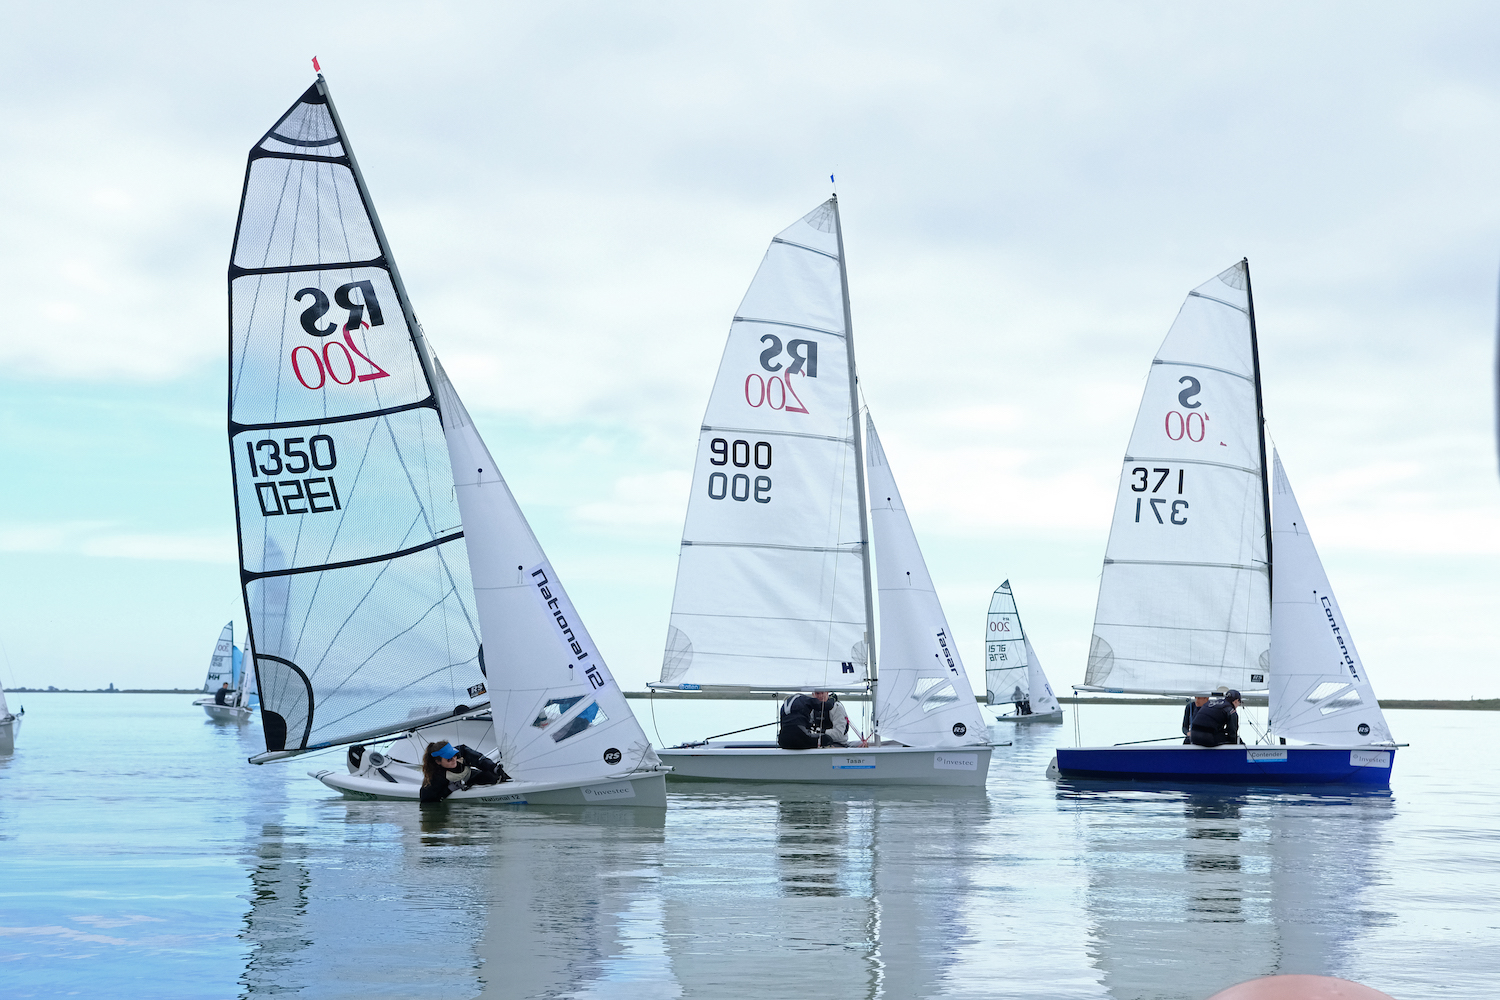 Ultra light winds for today's training session – photo Roger Mant